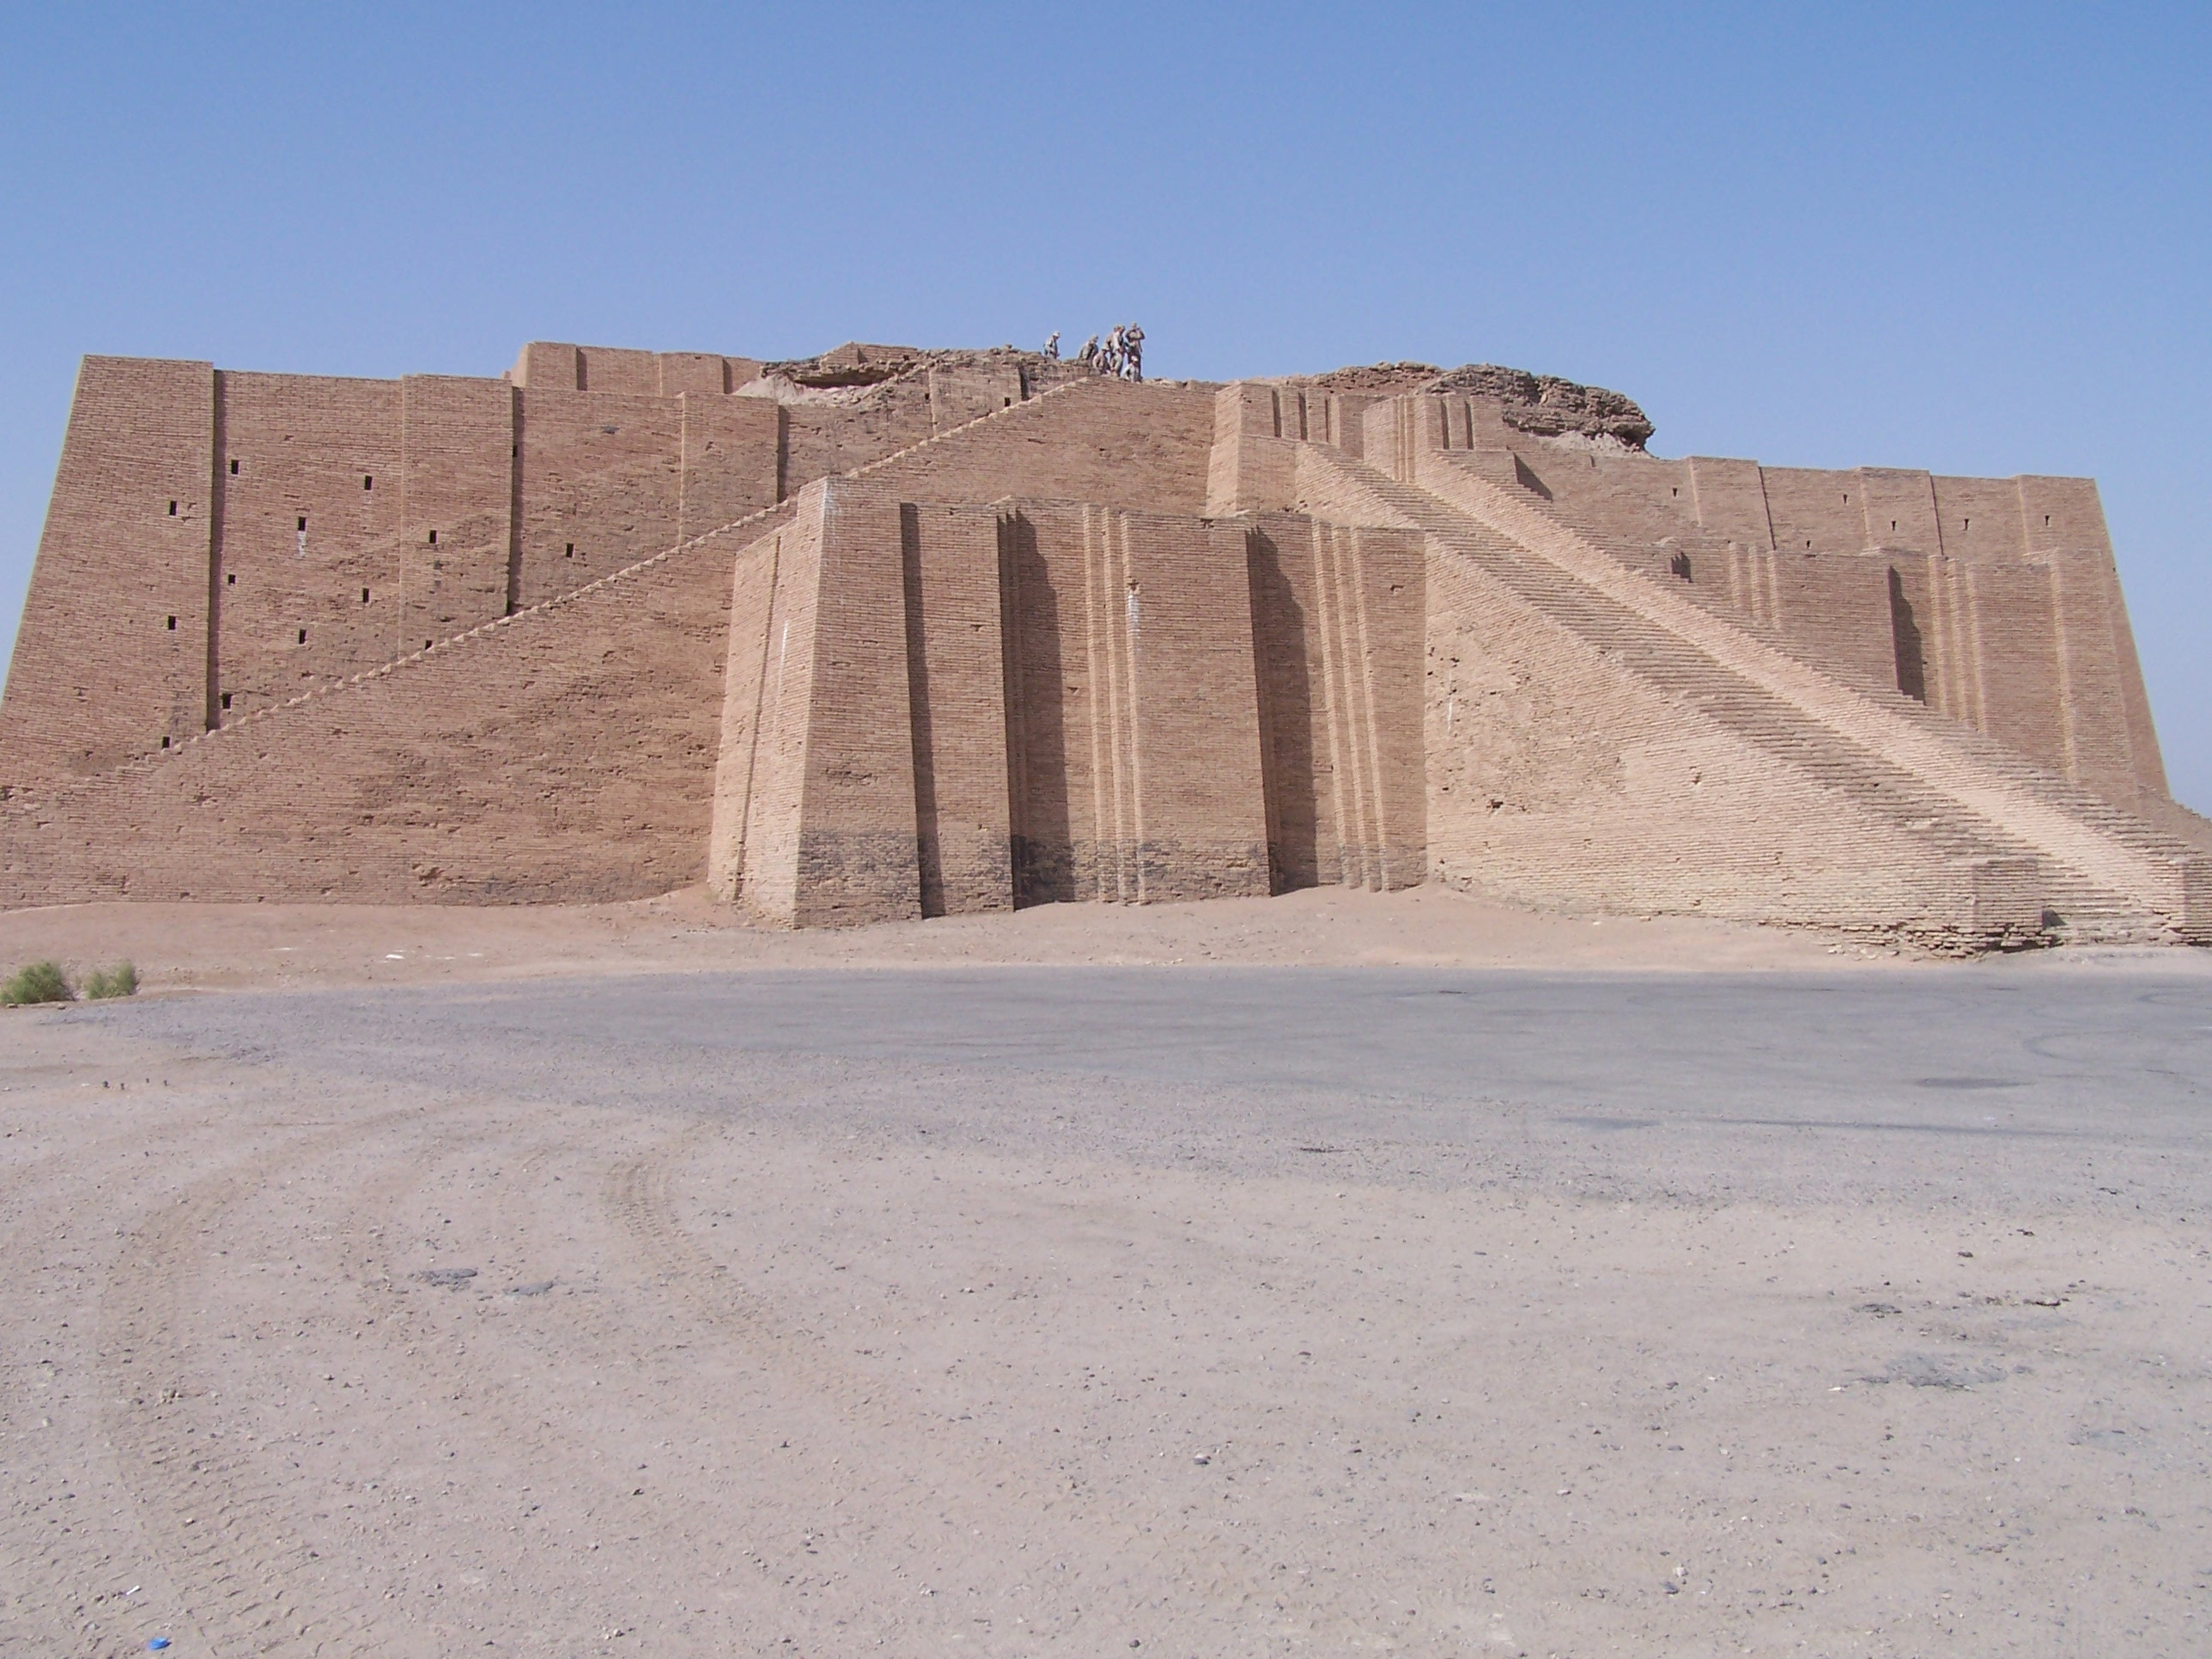 http://upload.wikimedia.org/wikipedia/commons/9/93/Ancient_ziggurat_at_Ali_Air_Base_Iraq_2005.jpg